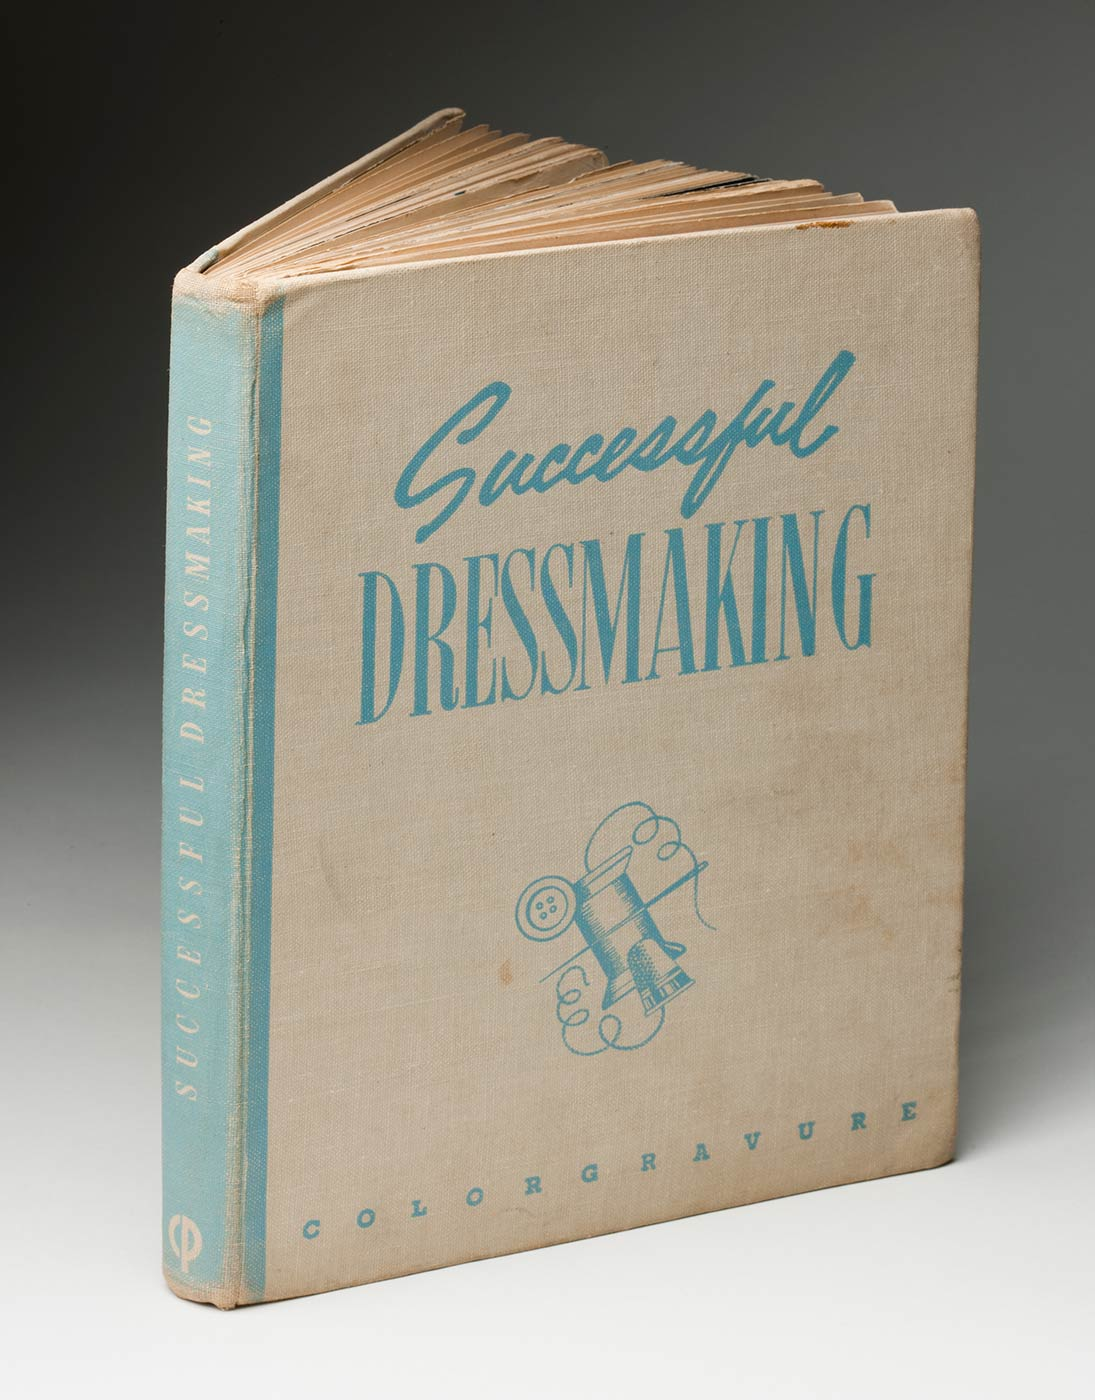 Beige and pale blue book cover titled 'Successful DRESSMAKING', with a line drawing of a needle, thread, button and thimble. - click to view larger image